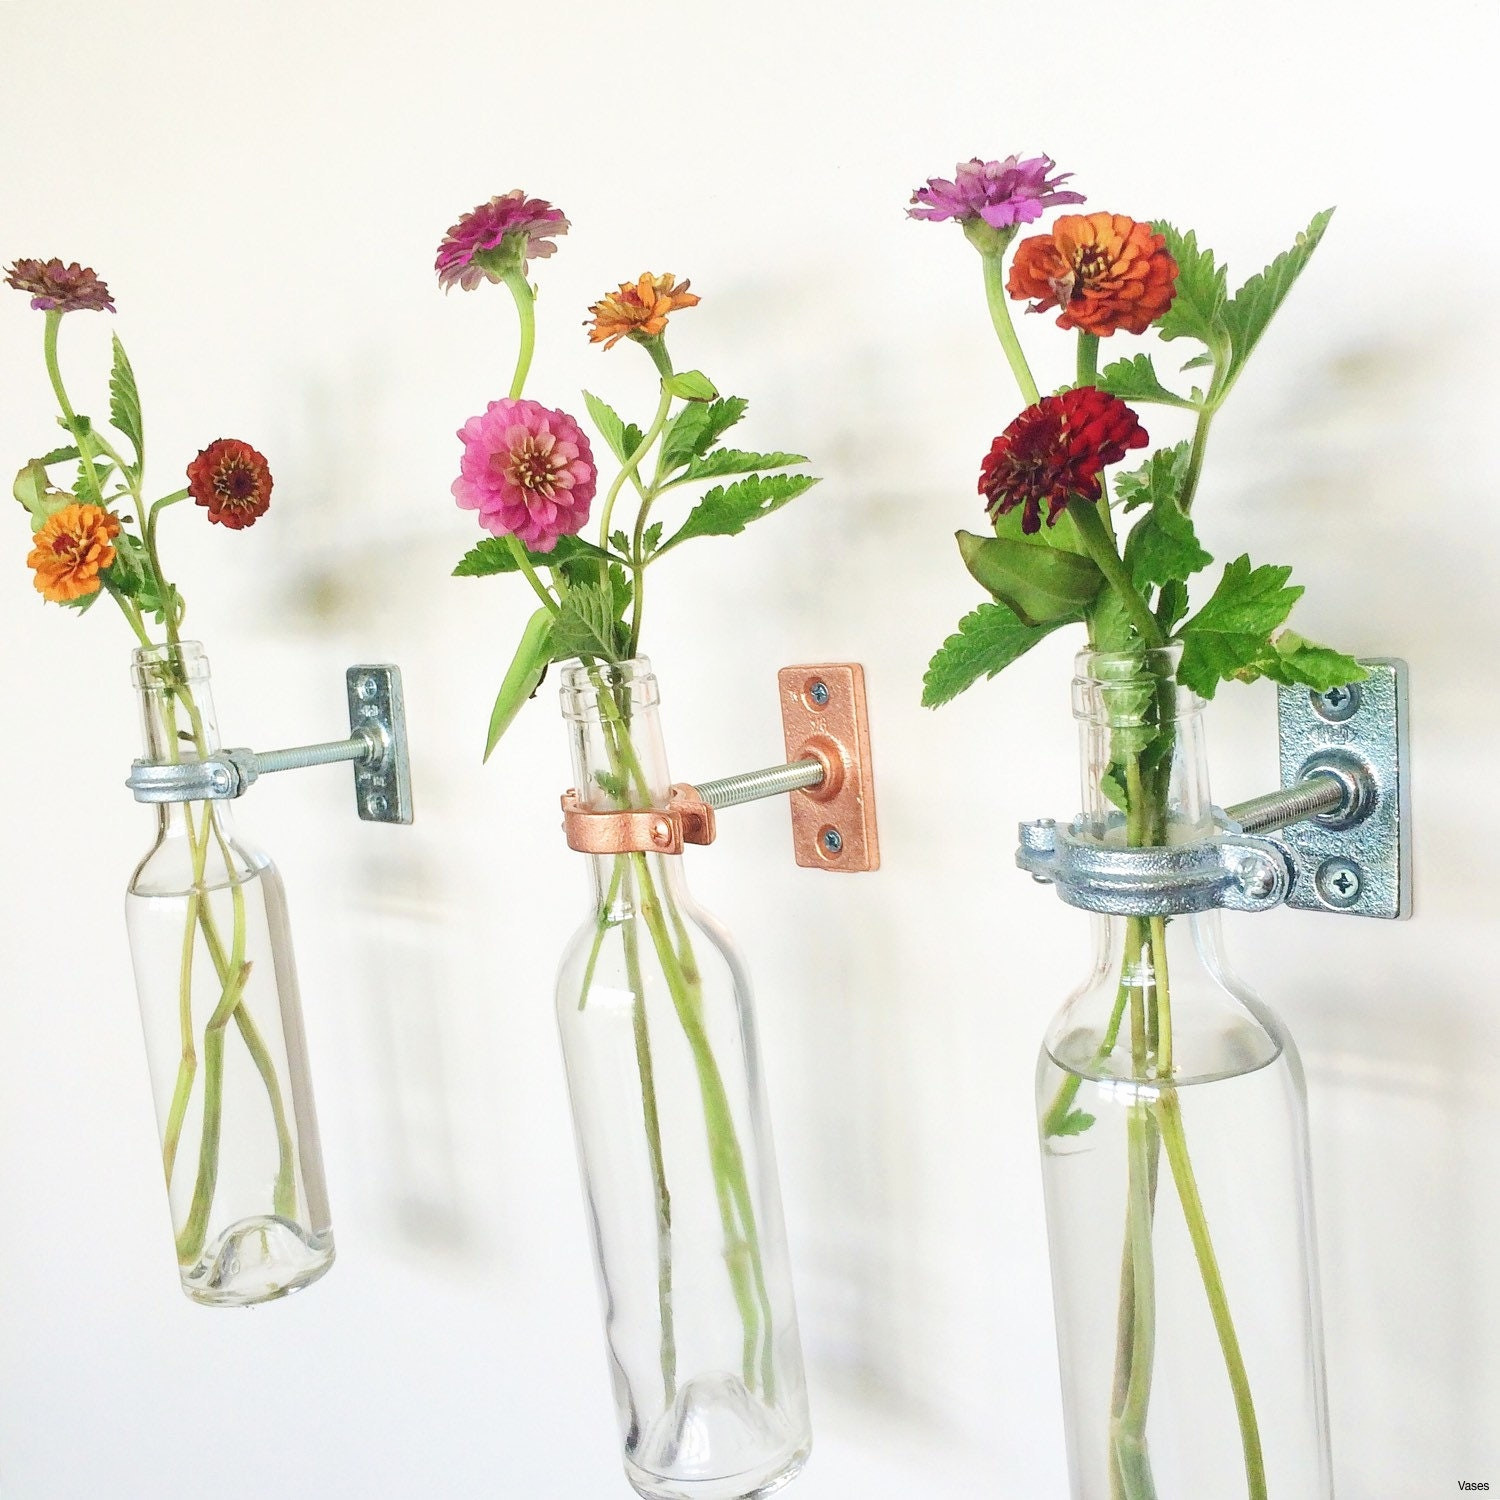 floating flowers in vases centerpieces of flower wall vase images wooden wall vase new tall vase centerpiece with regard to flower wall vase images wooden wall vase new tall vase centerpiece ideas vases flowers in